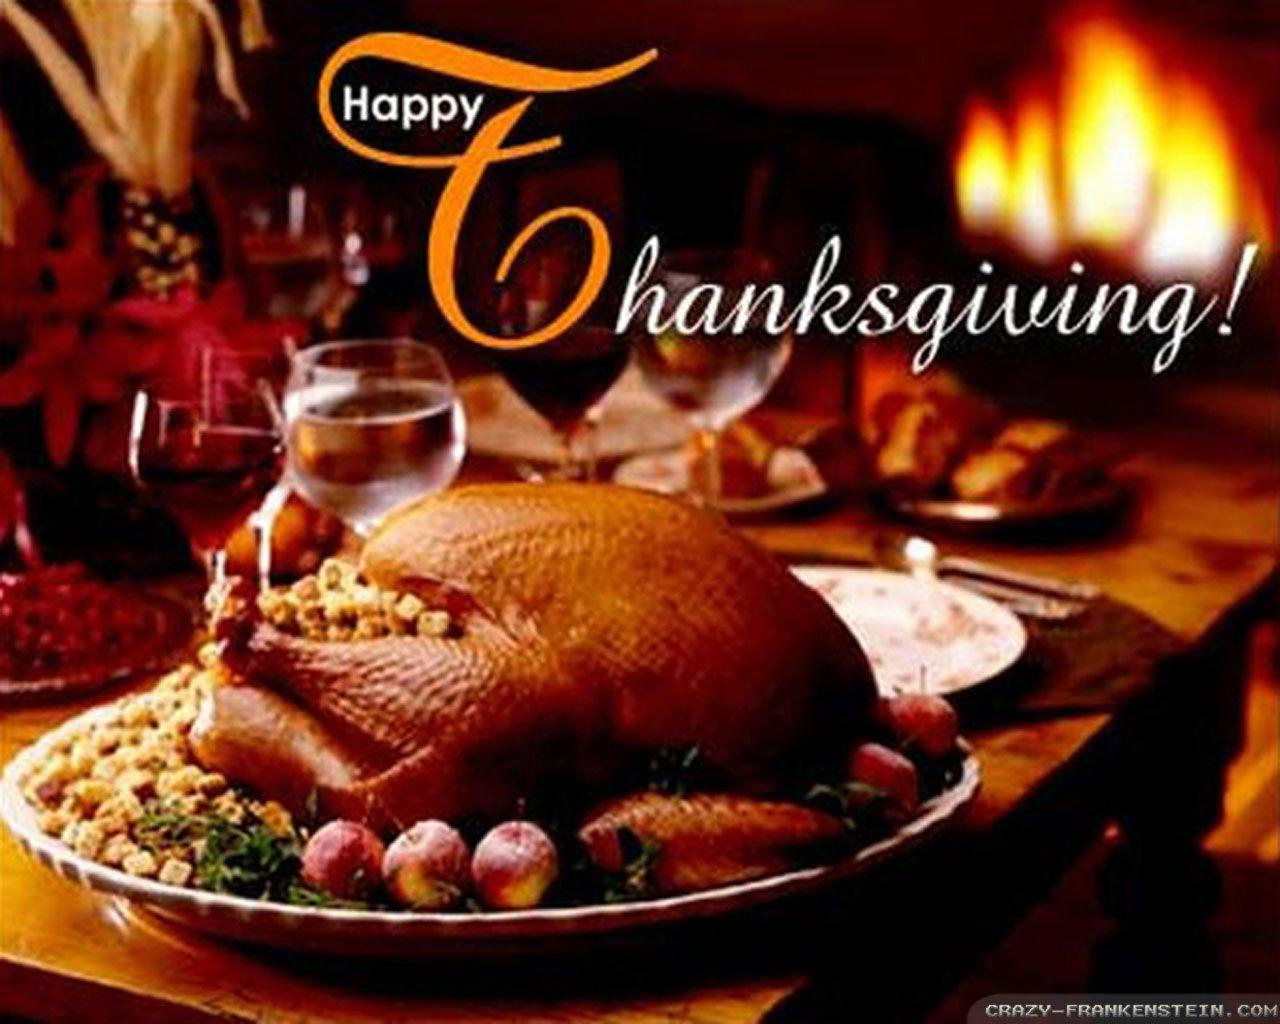 Happy Thanksgiving Day wallpapers